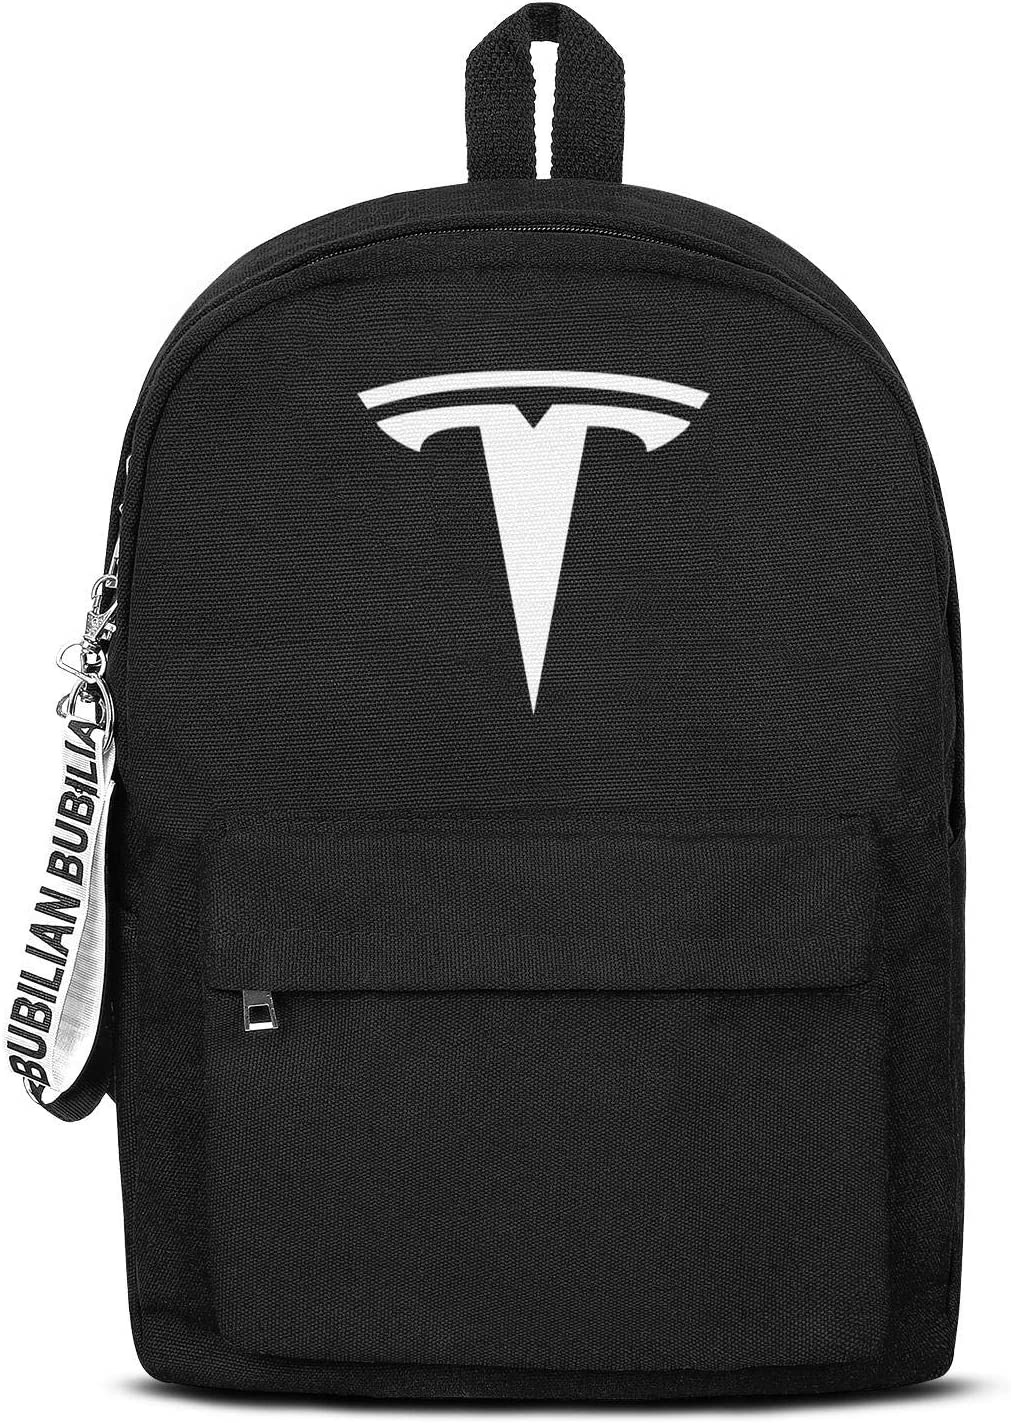 School College Black Book Bags with Pencil Case Tesla-Logo- Cool Travel Laptop Canvas Backpack